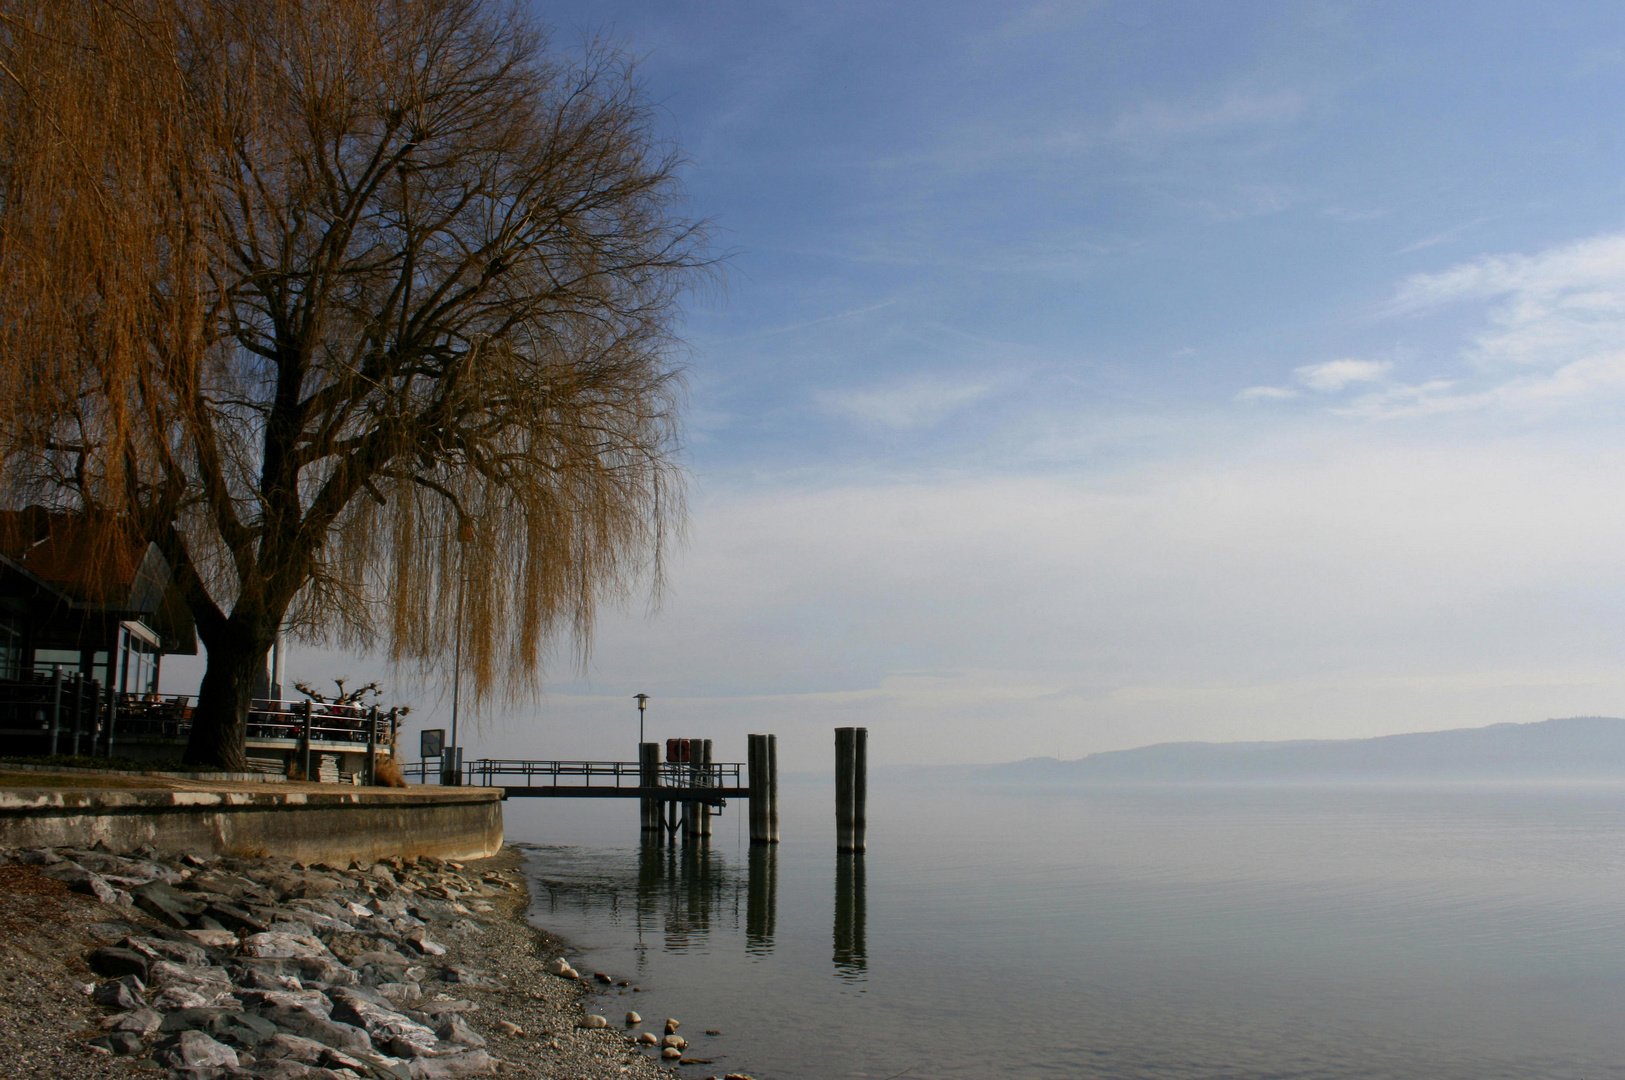 Winter am See at